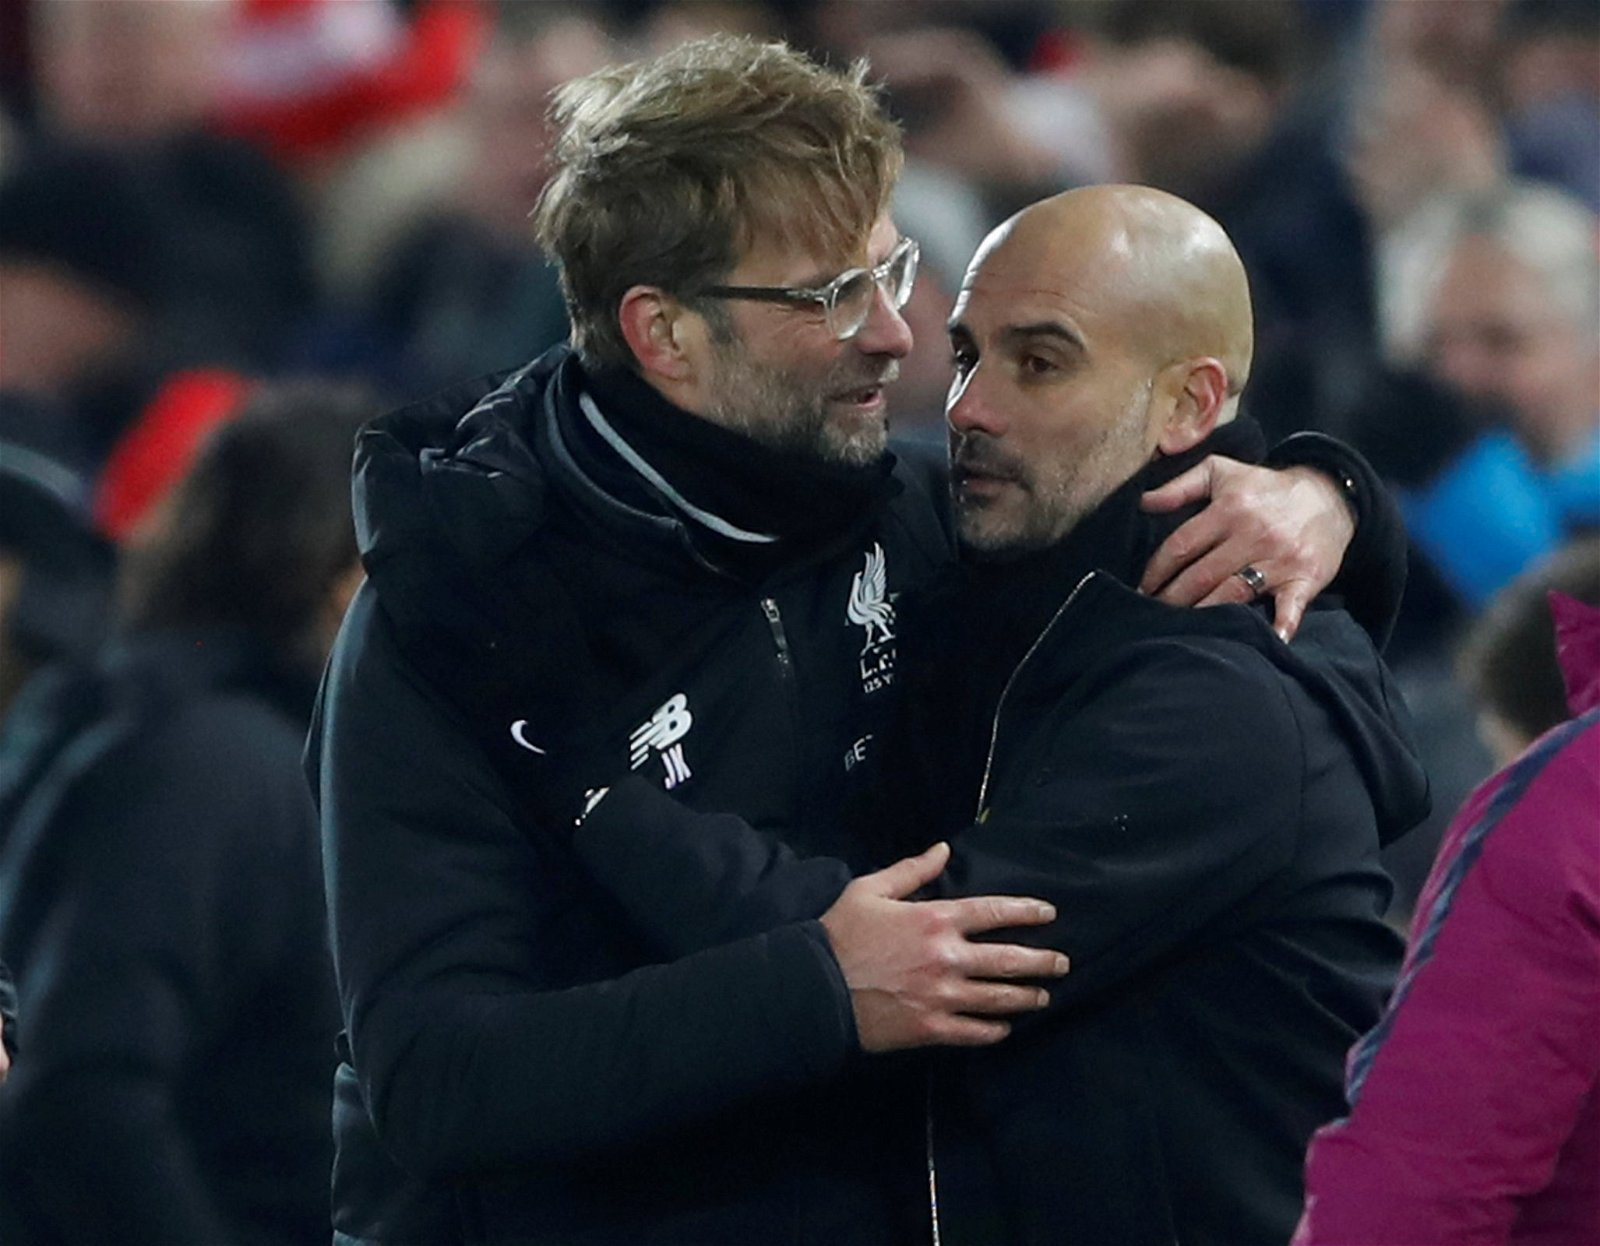 A New Classic: Liverpool and Man City kindle a new English rivalry